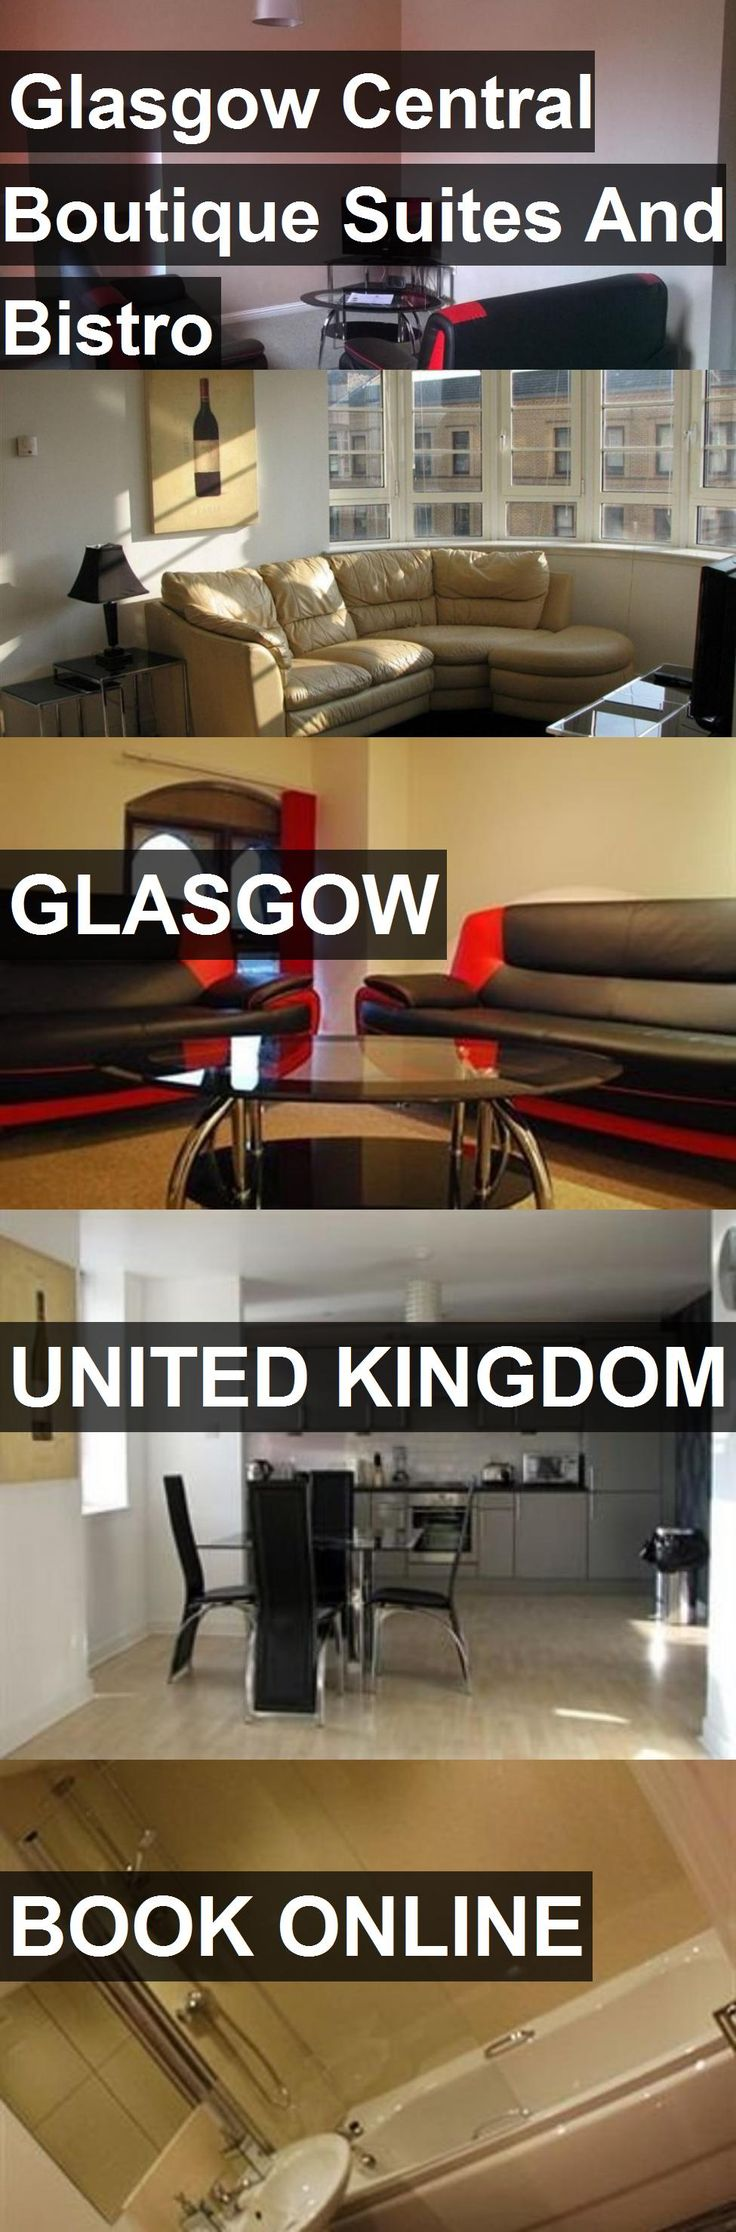 Hotel Glasgow Central Boutique Suites And Bistro in Glasgow, United Kingdom. For more information, photos, reviews and best prices please follow the link. #UnitedKingdom #Glasgow #travel #vacation #hotel